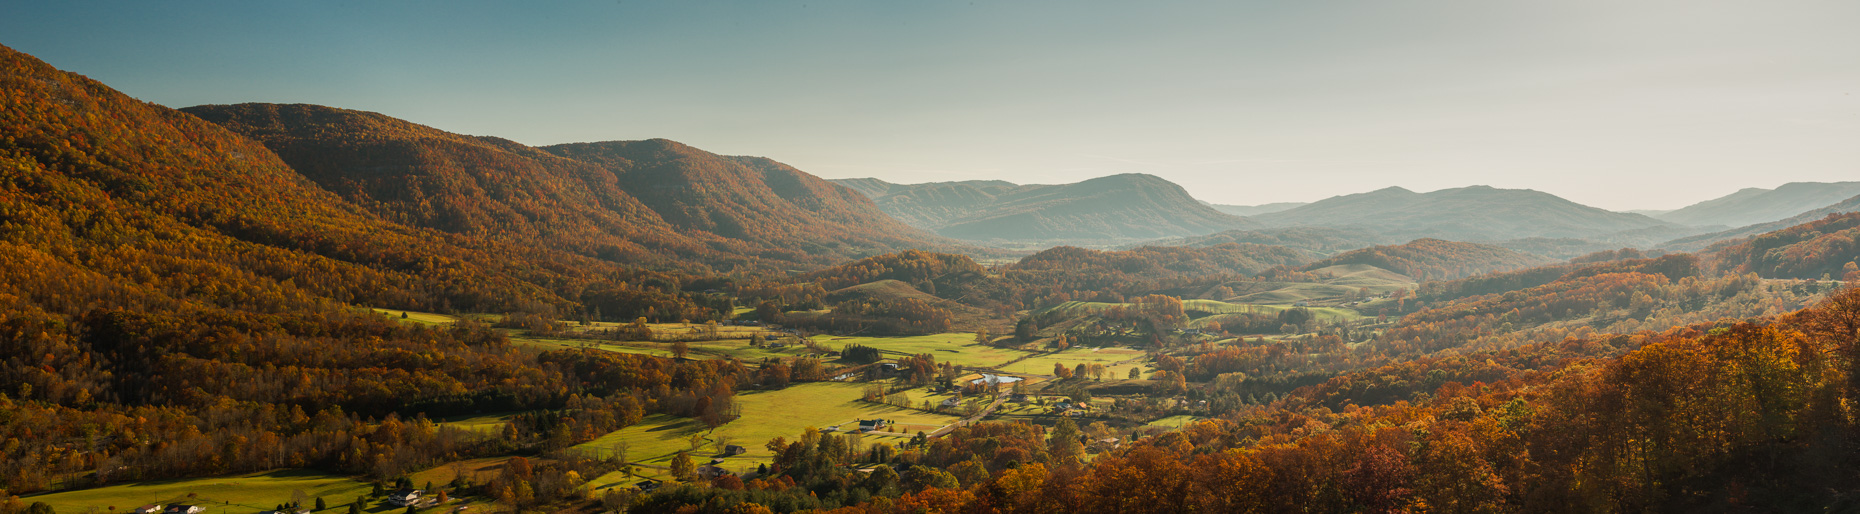 2012.10.19-21_SmokyMountains_0359-Edit